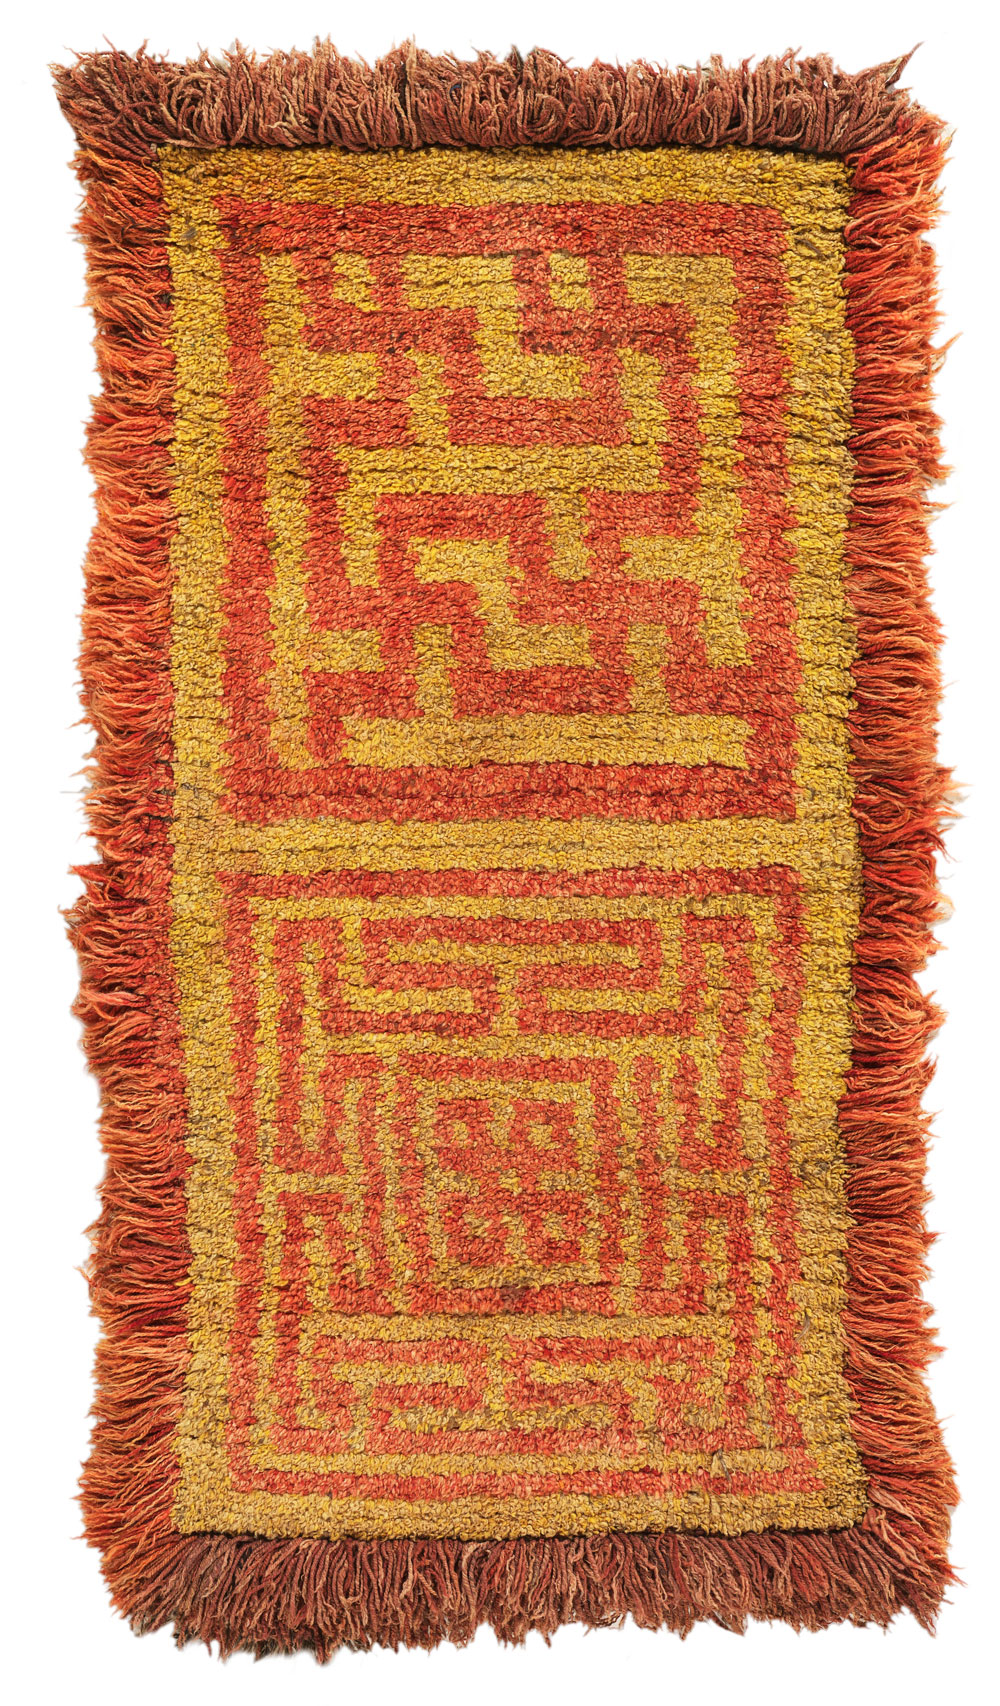 Wangden warp face back rug, 19th century, 160 x 76 cm